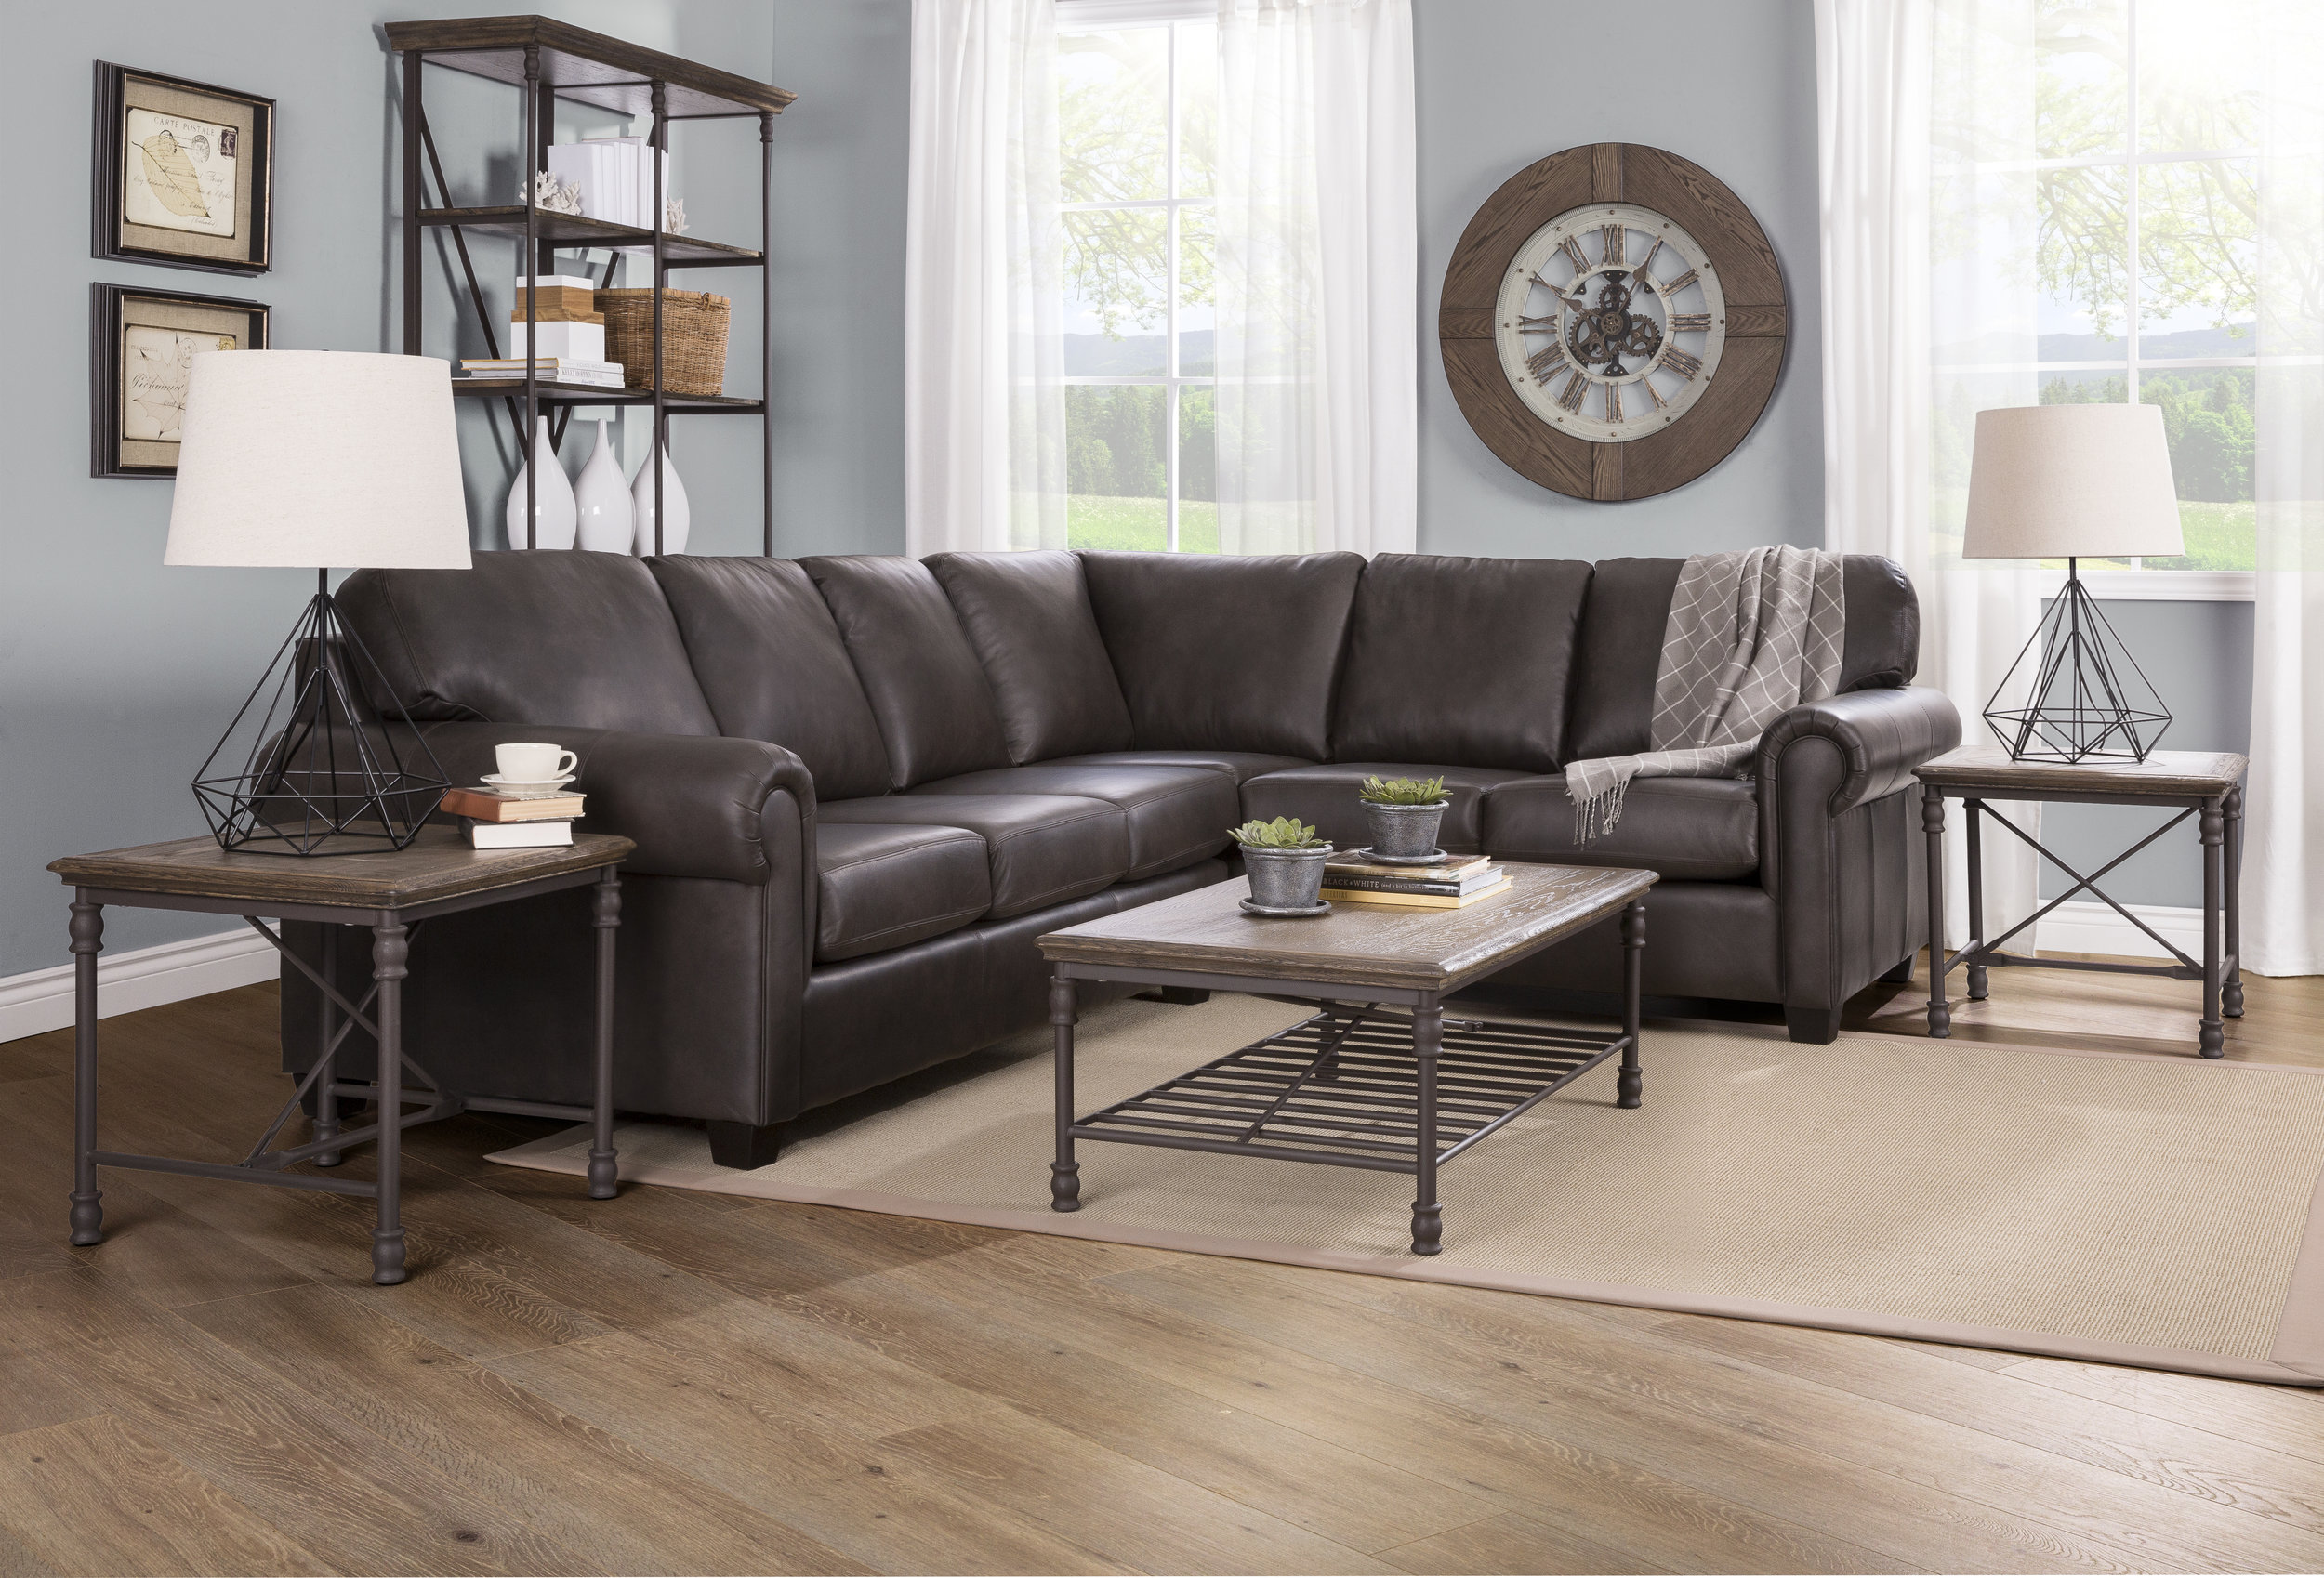 3006_Sectional_3007-3016_Room_v1.jpg